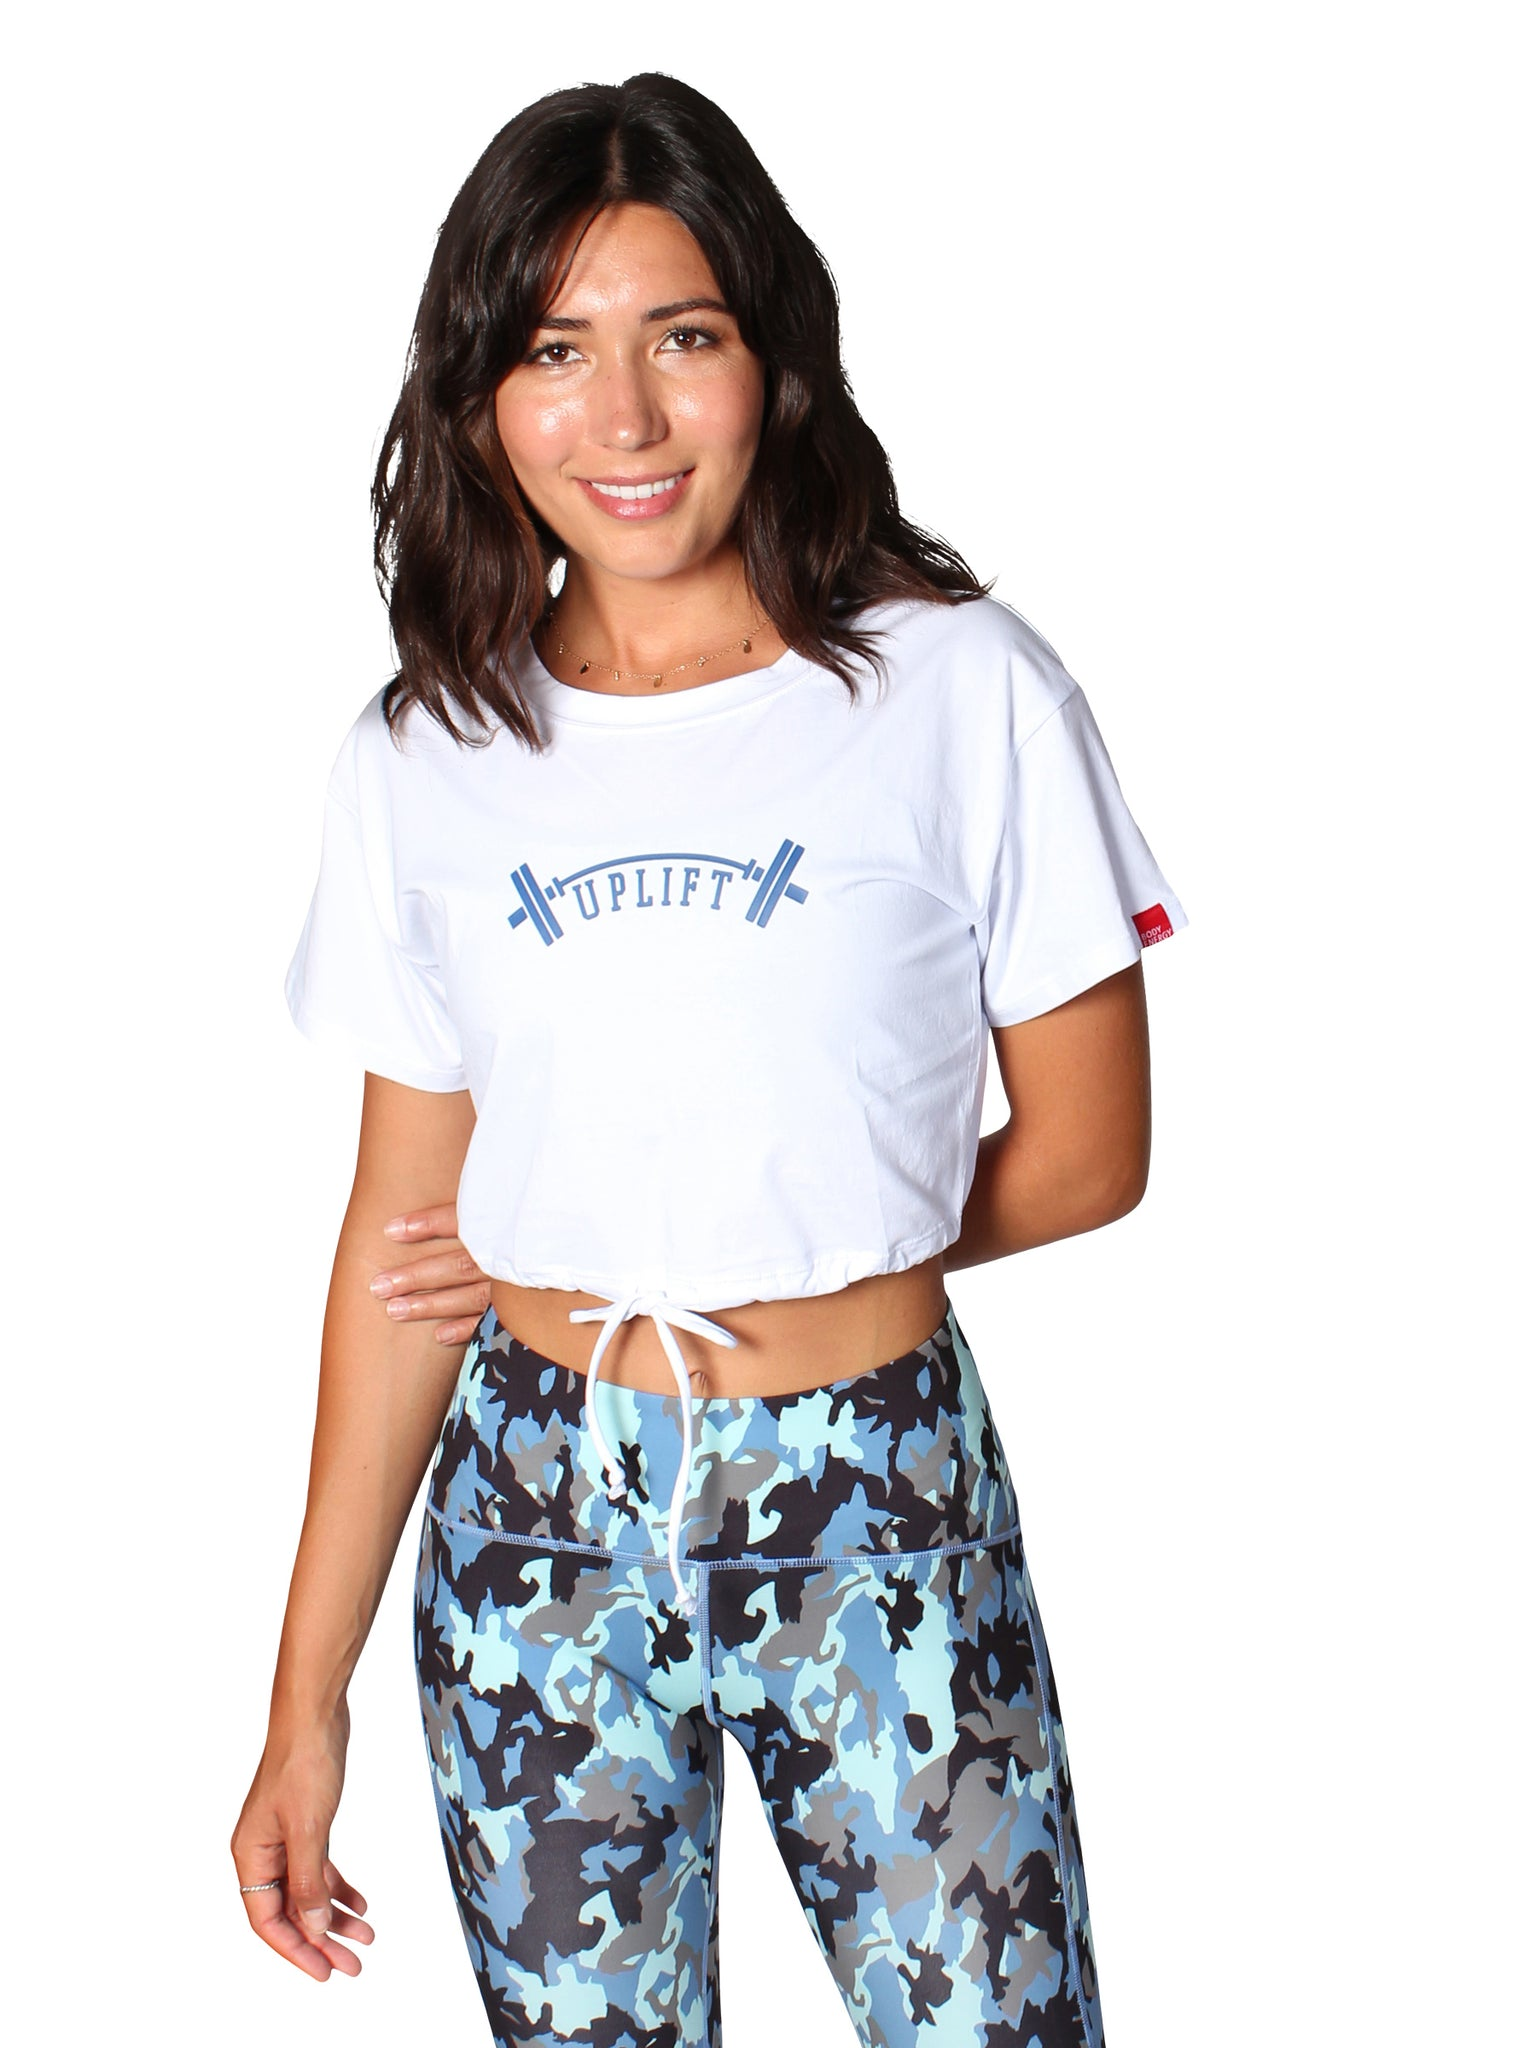 UPLIFT CROP DRAWSTRING T-SHIRT - WHITE